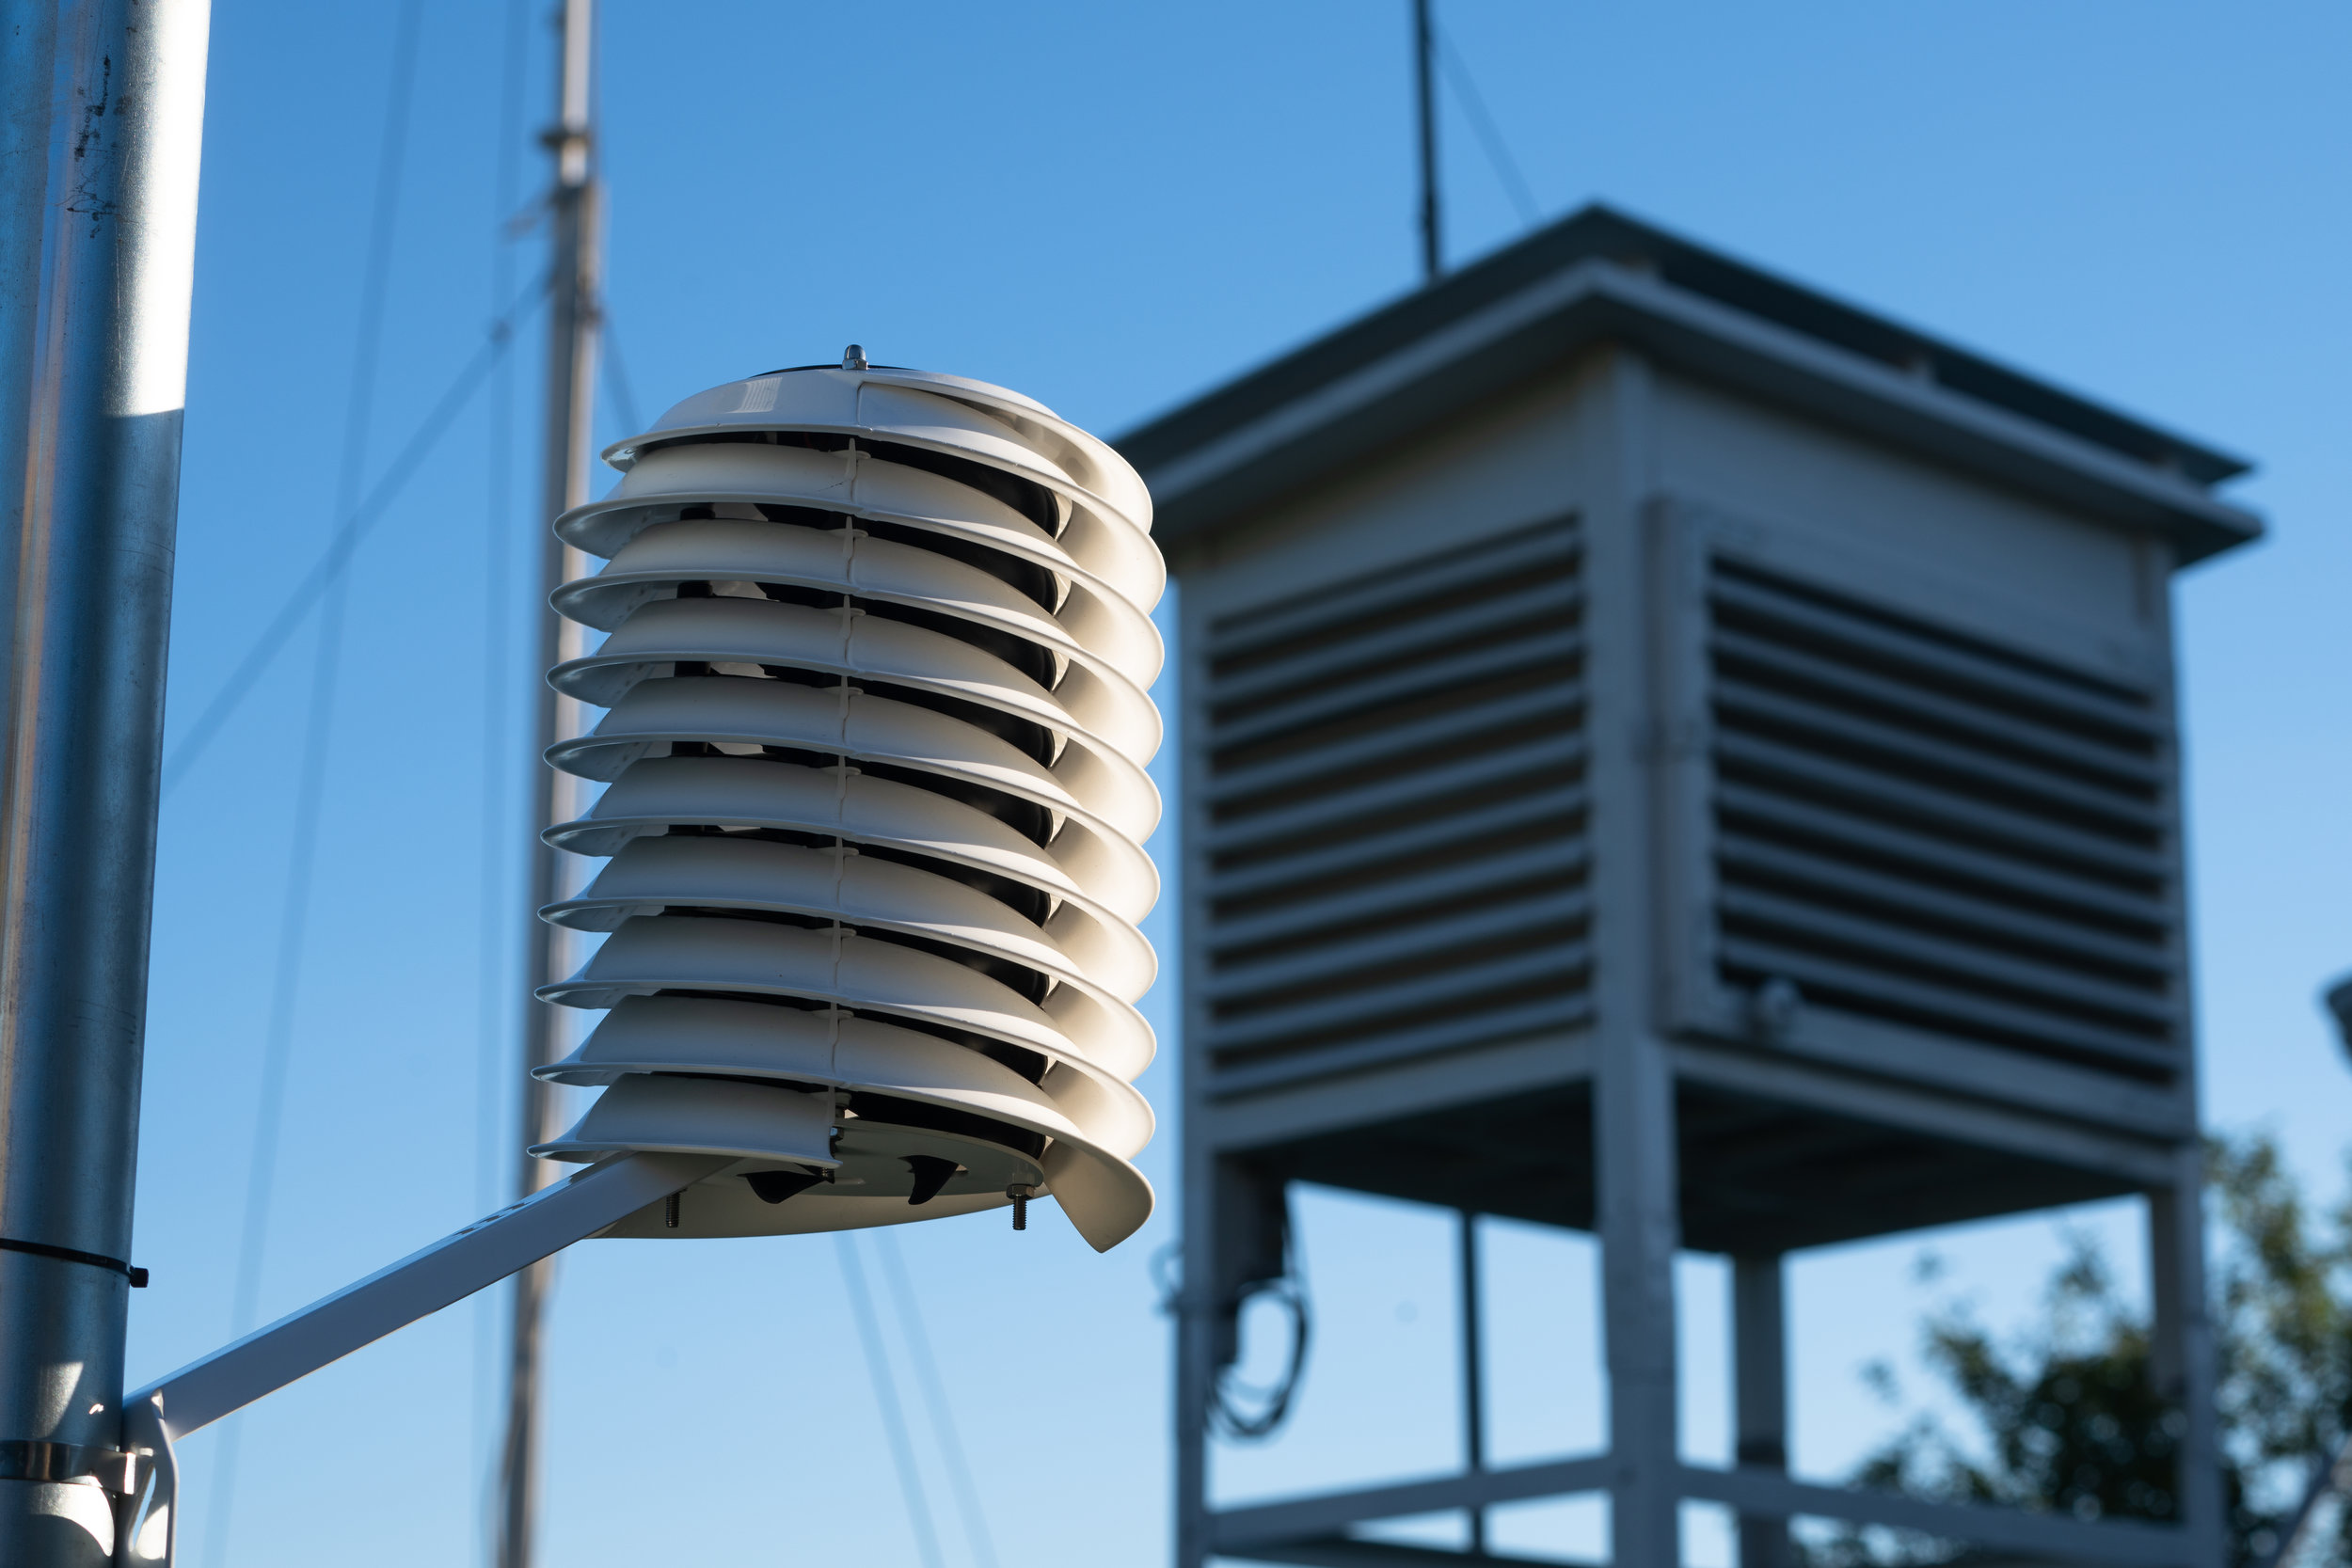 Barani MeteoHelix IoT Pro LoRa weather station overshadows Stevenson Screen shelter